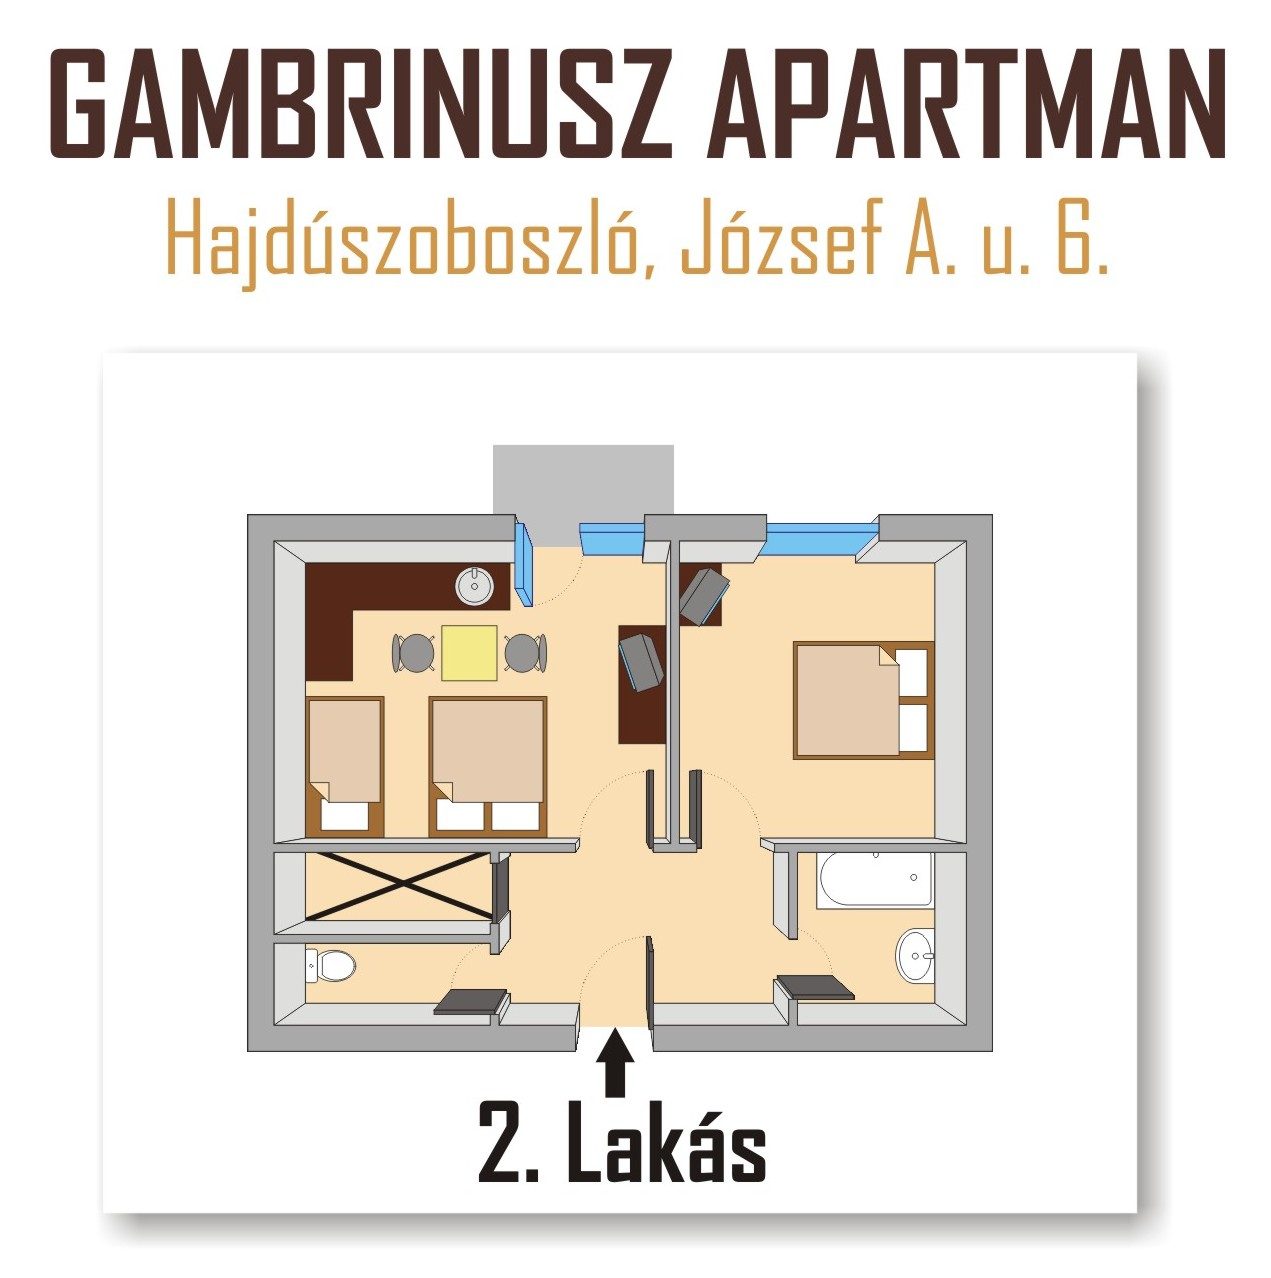 Gambrinusz Apartman Hajdszoboszl - 5 fs apartman